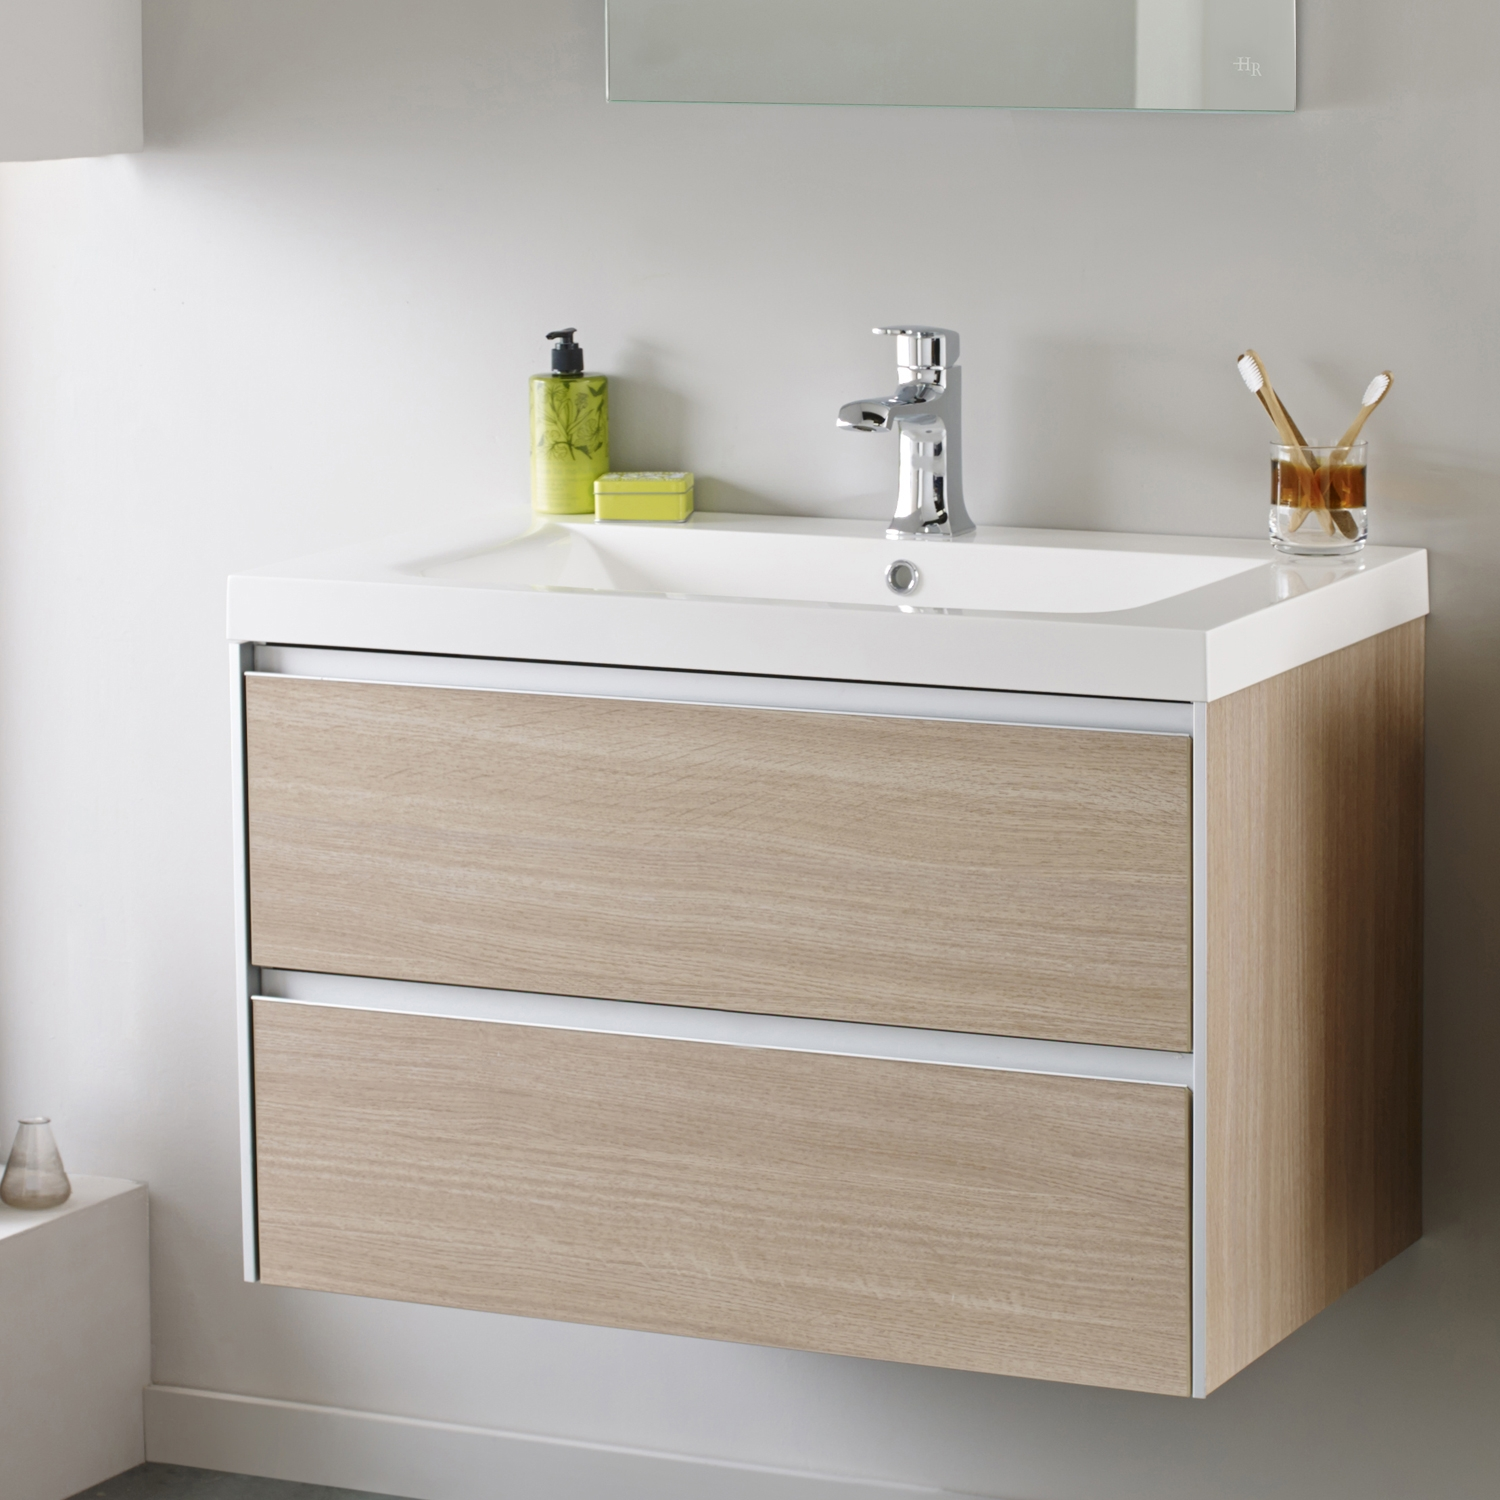 Hudson Reed Erin Wall Mounted Basin and Cabinet, 800mm Wide, Light Oak